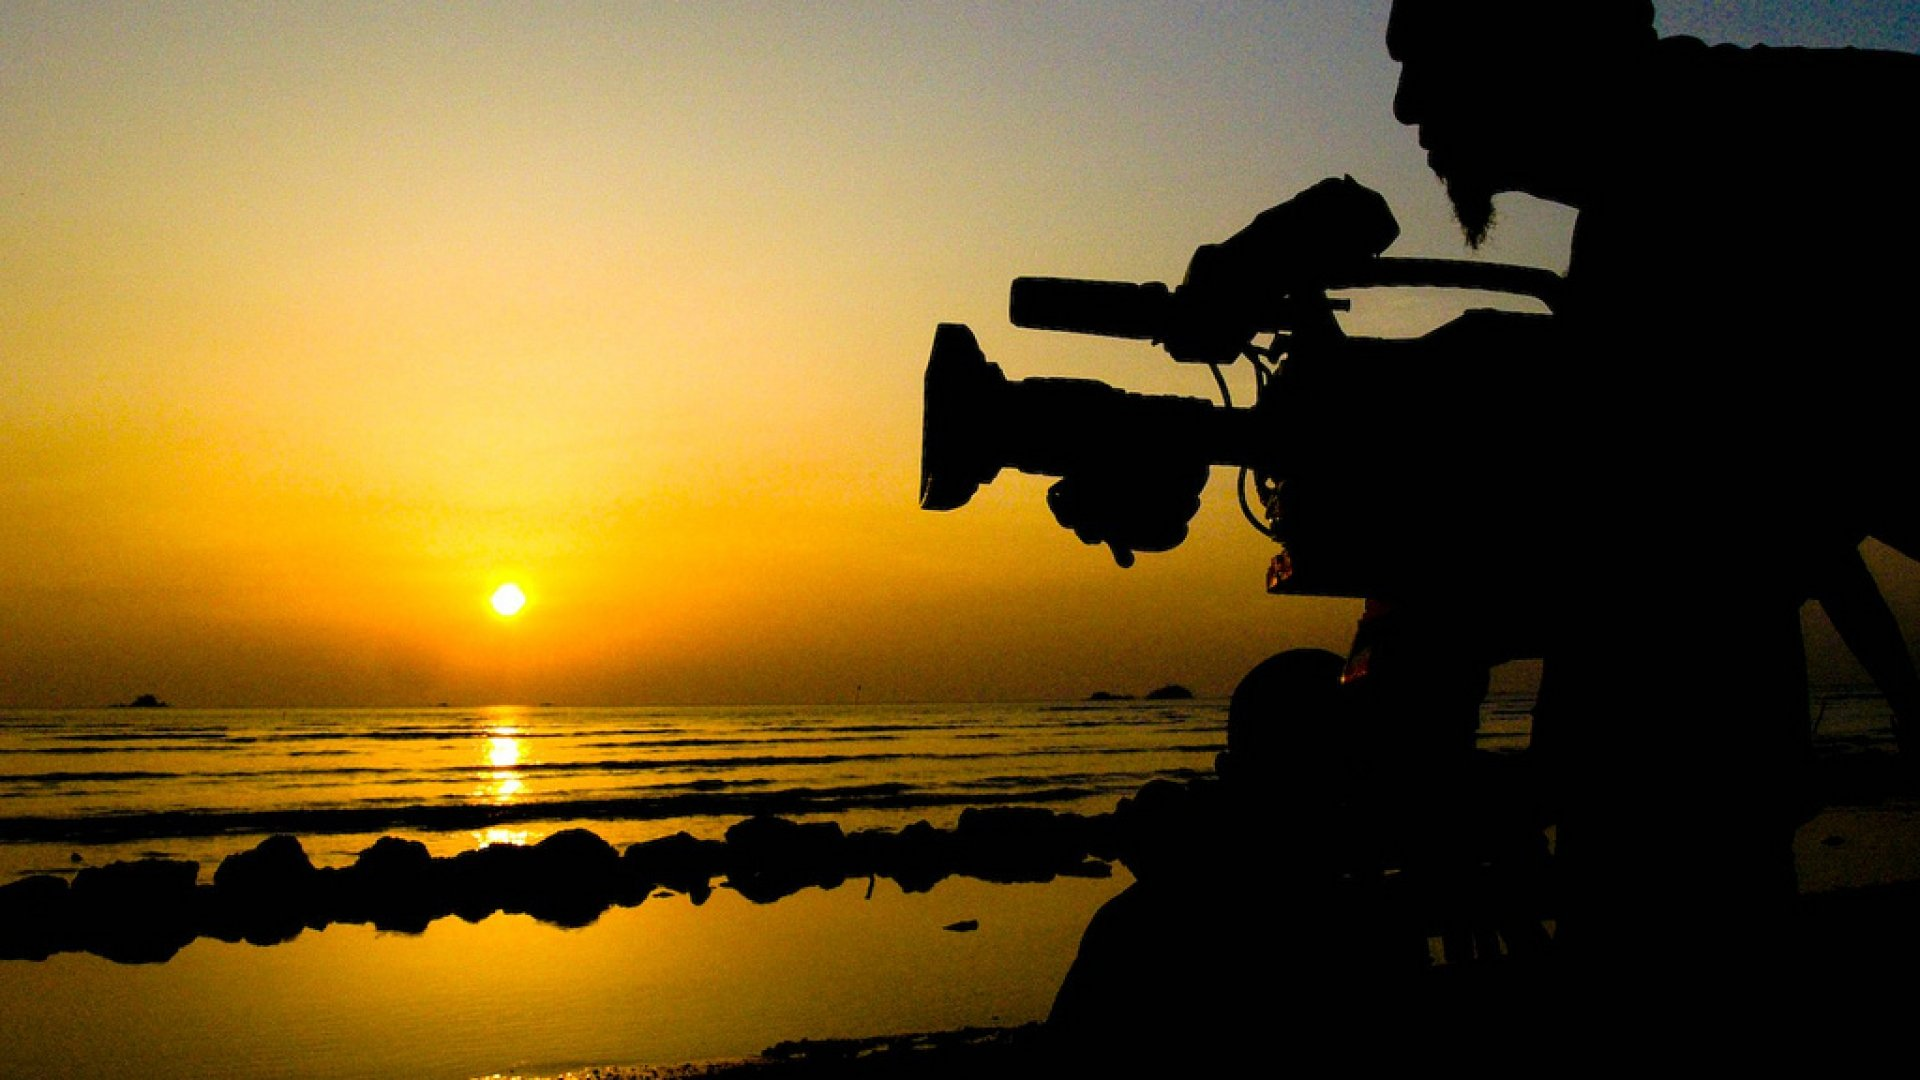 5 Tips for Making an Effective Video Ad